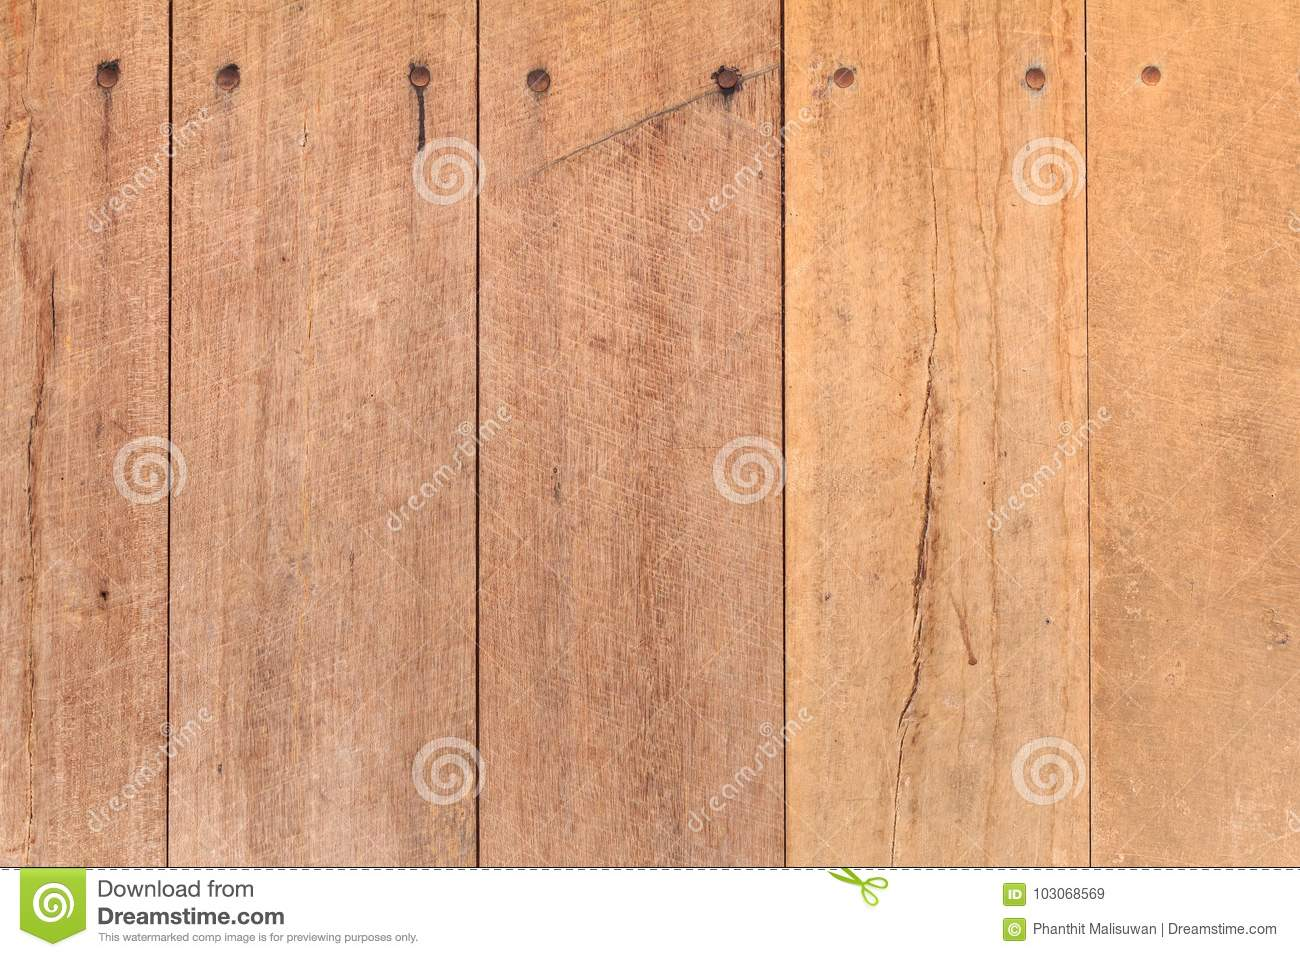 Industrial business wood